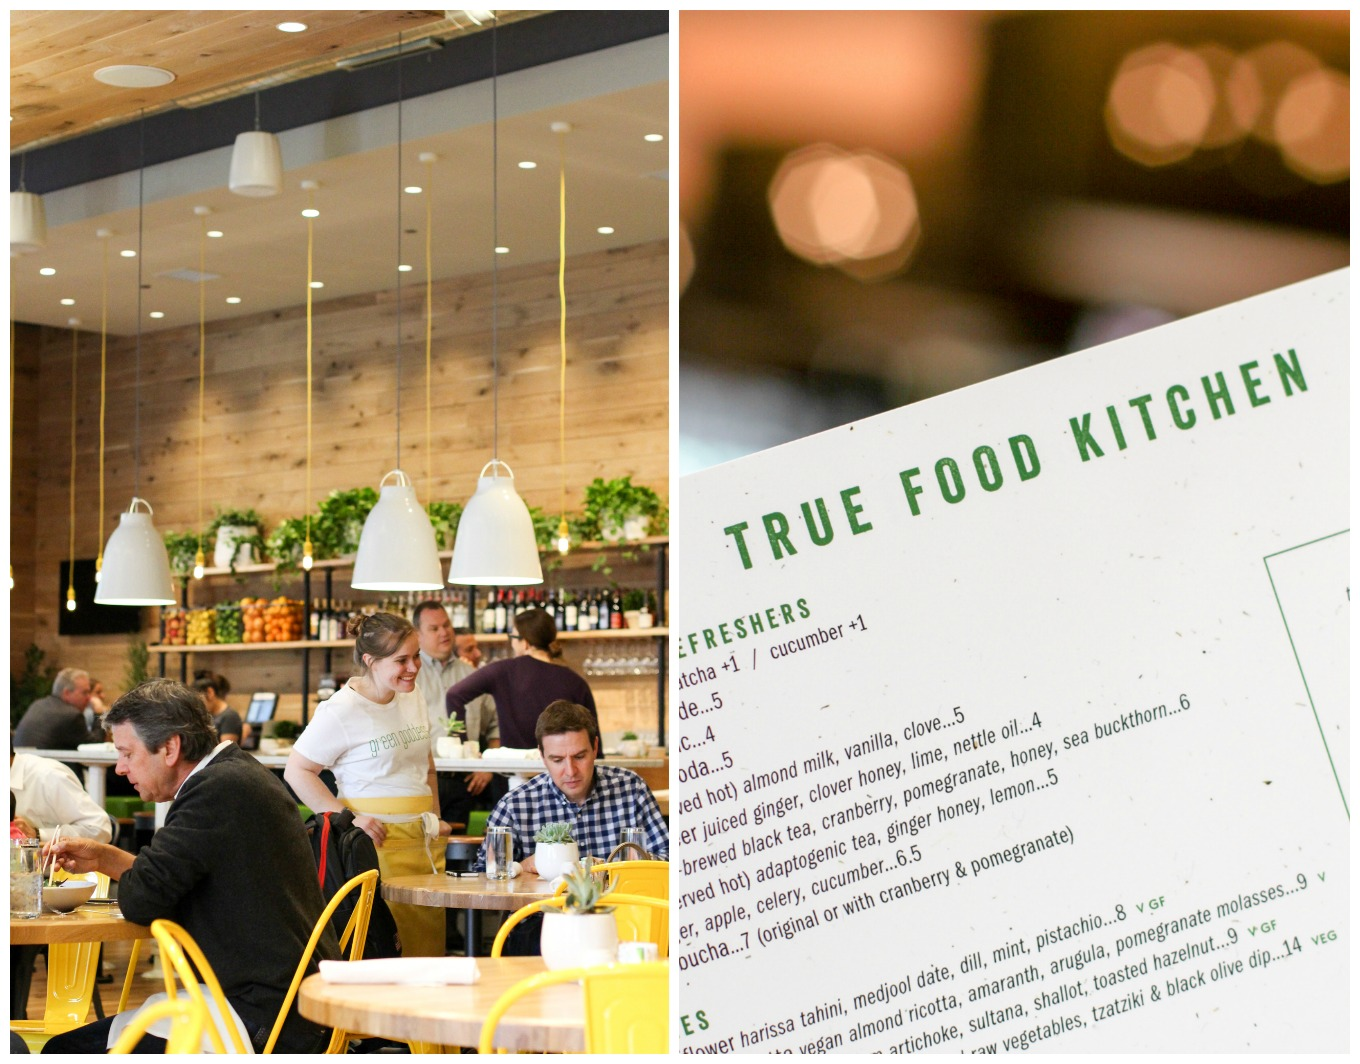 True food kitchen comes to chicago lake shore lady for Kitchen chicago